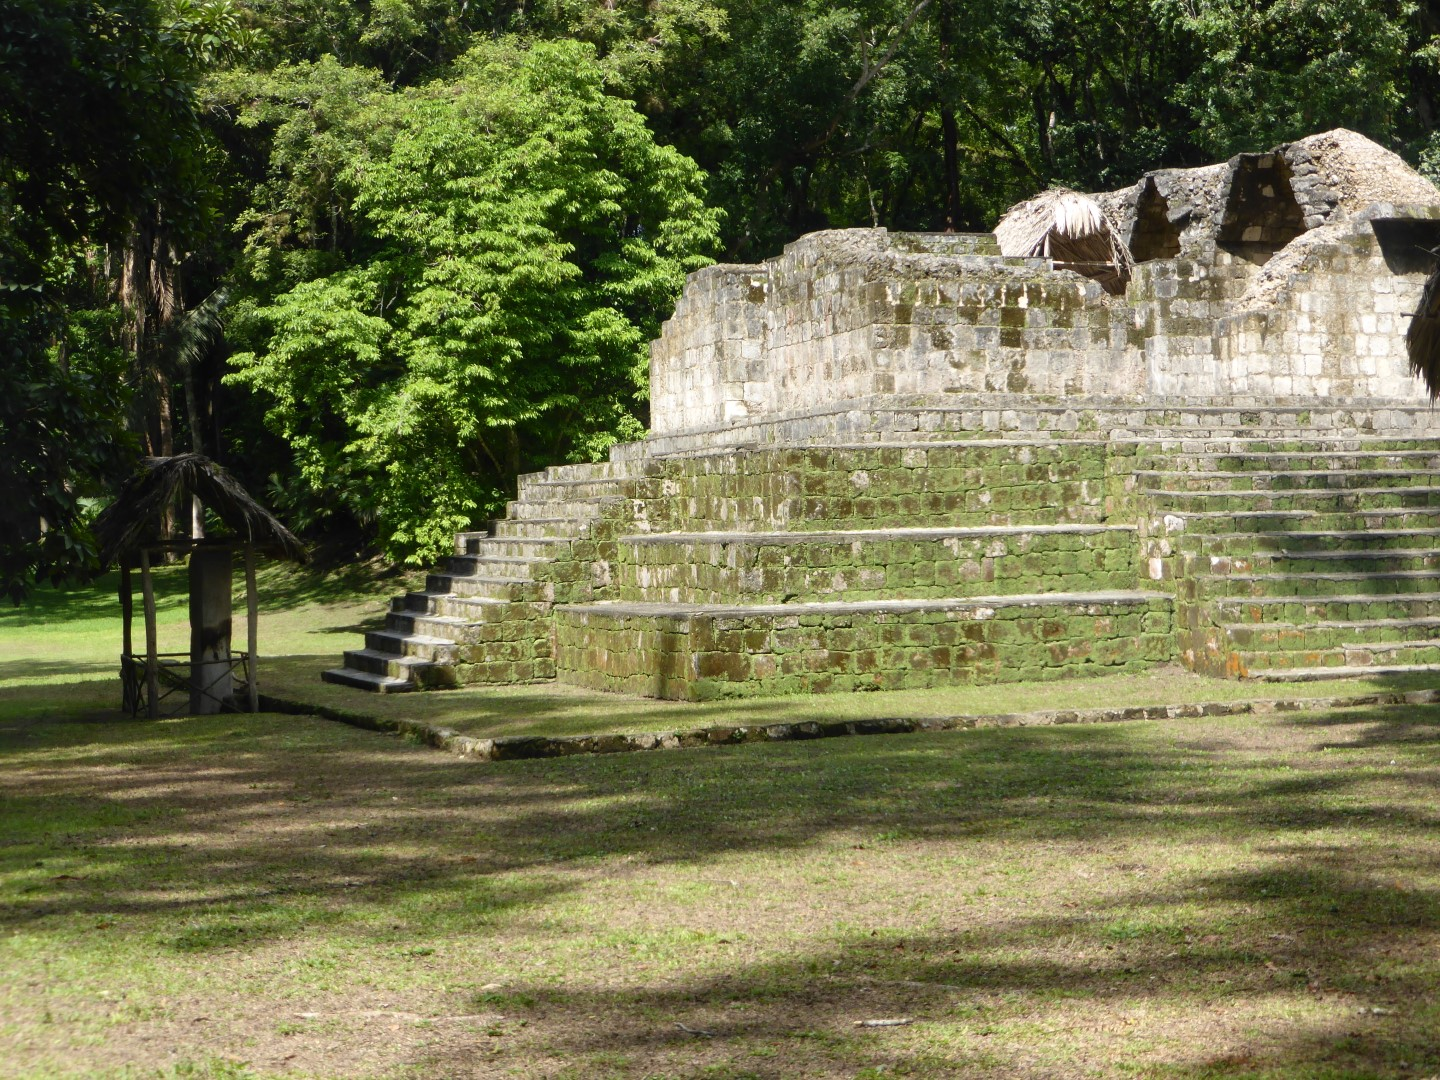 Mayan ruins at Ceibal, Guatemala